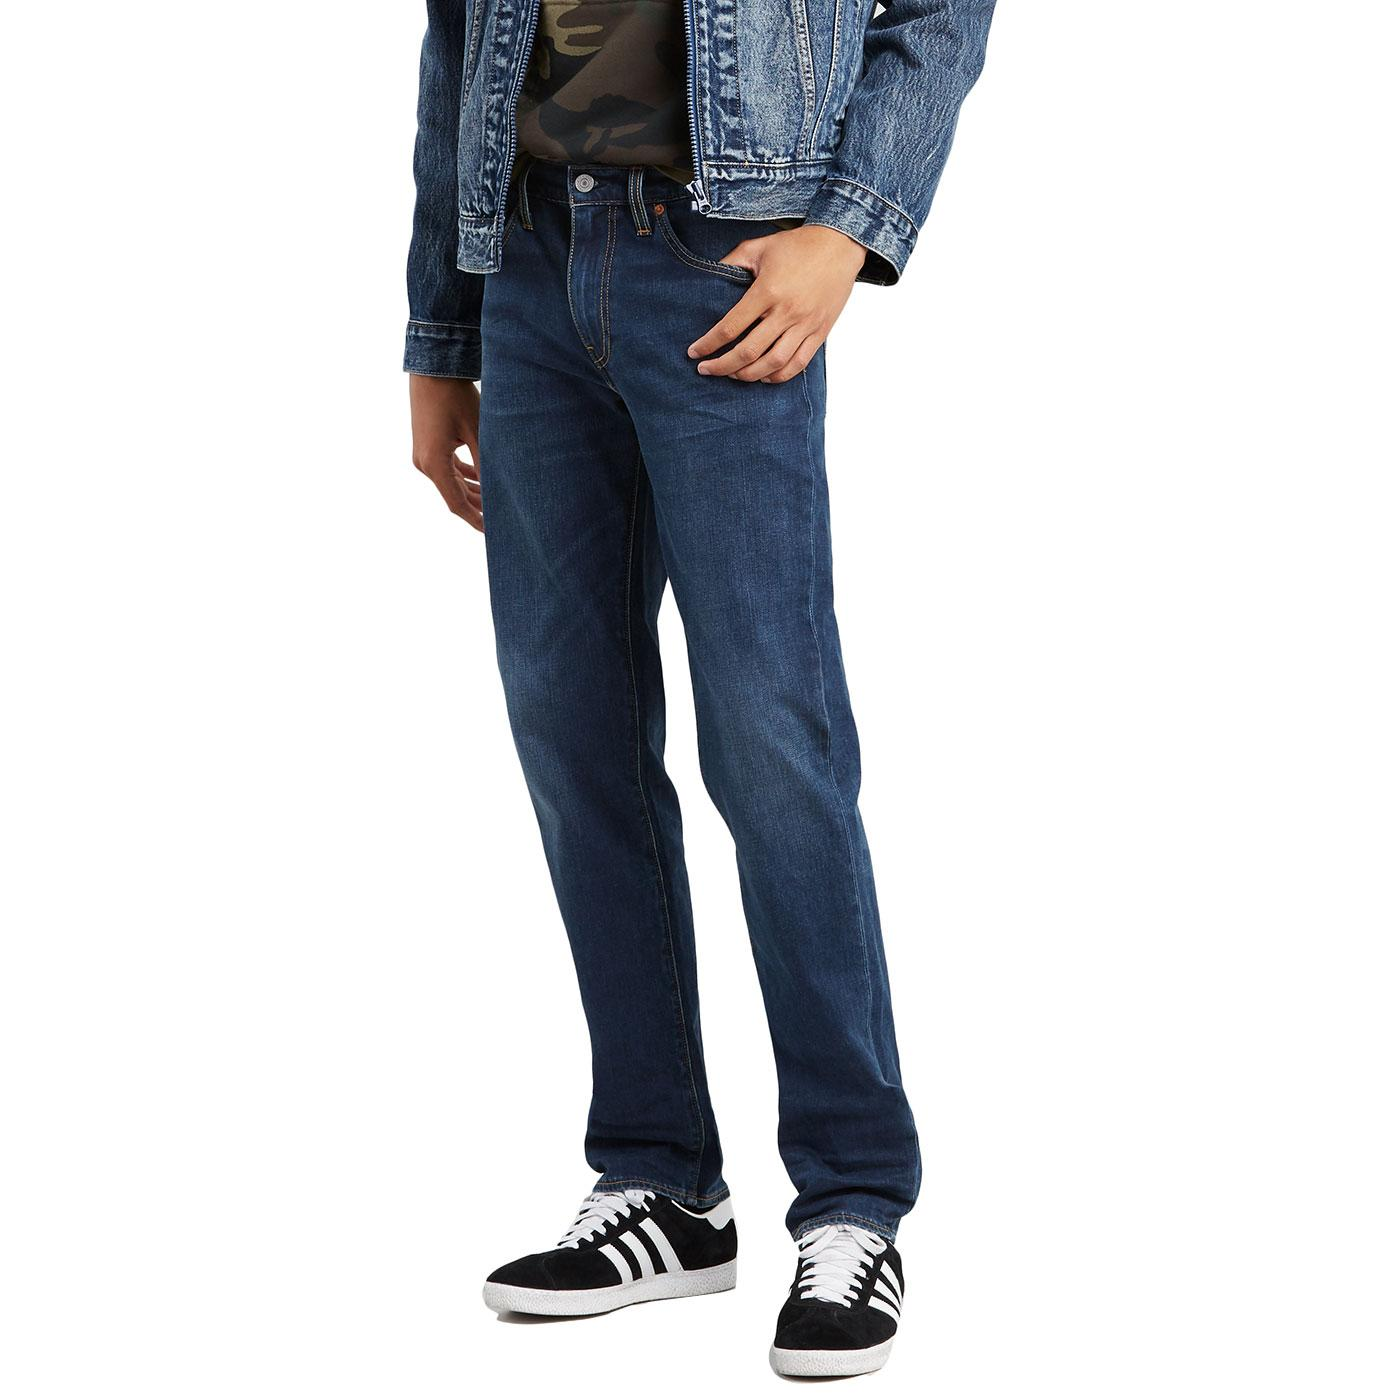 LEVI'S 511 Slim Retro Denim Jeans (Adriatic Adapt)